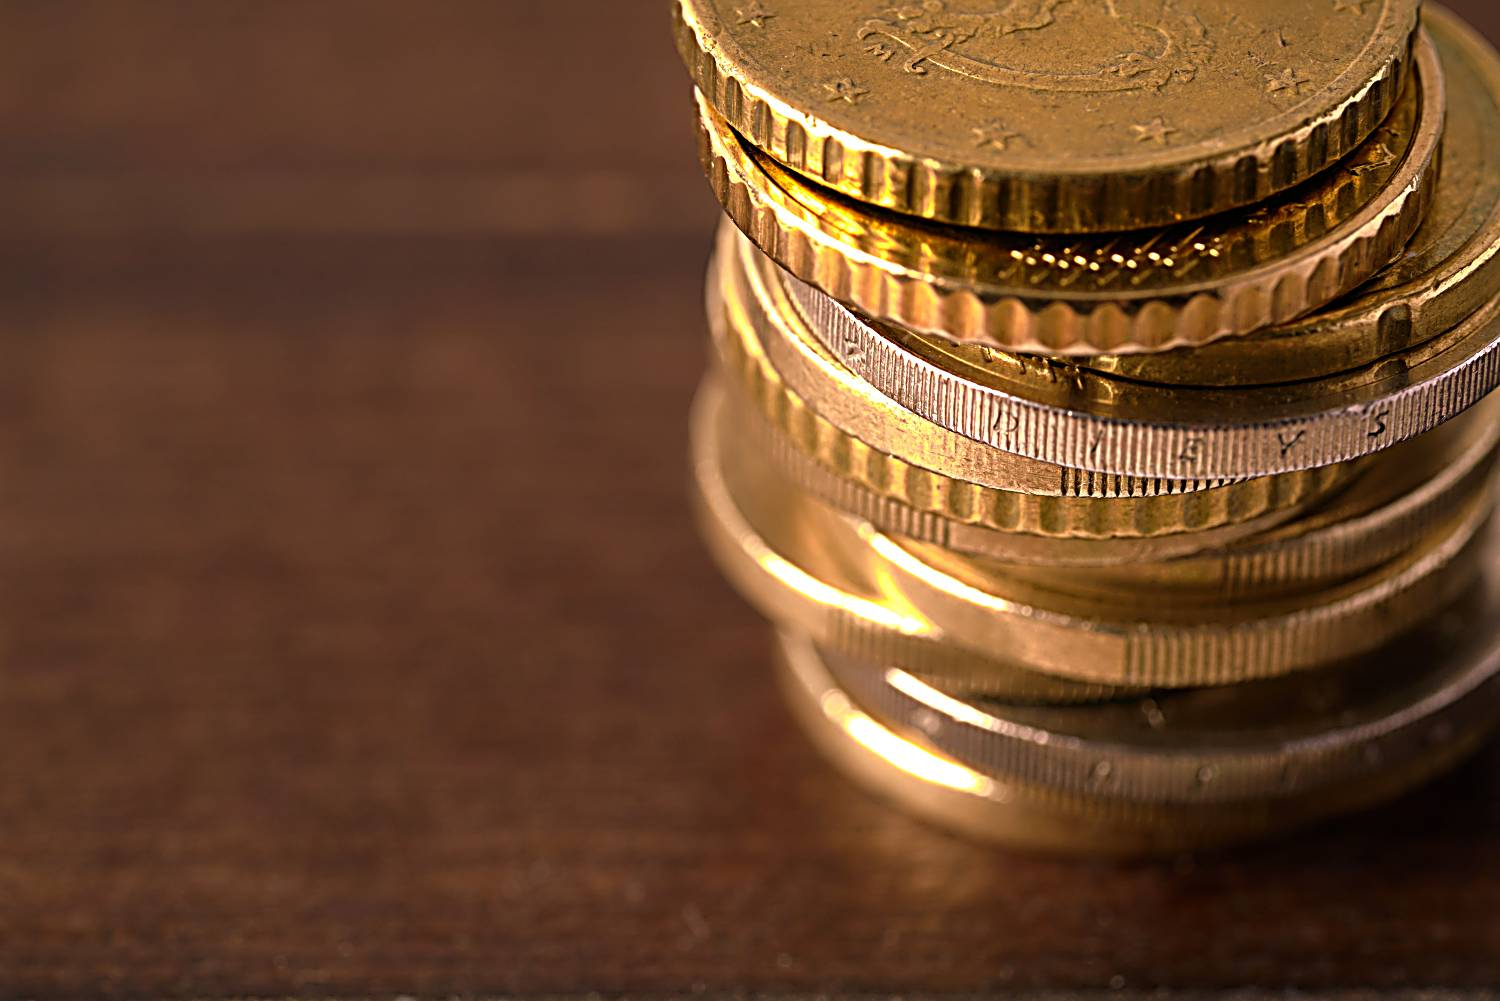 Euro coins stacked on each other in different positions